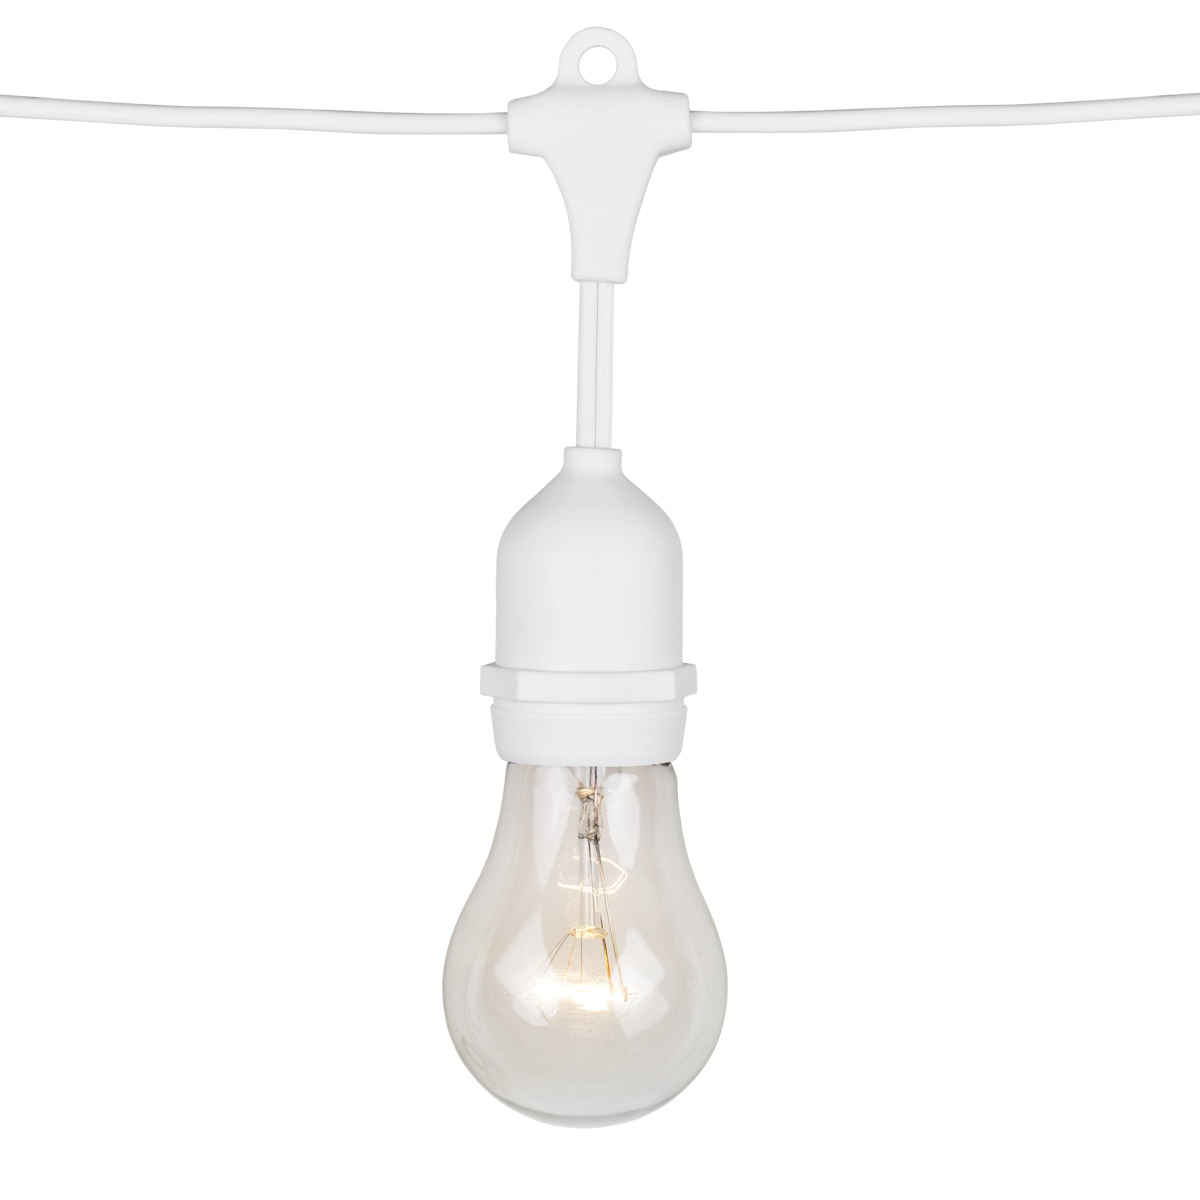 108u0027 Commercial Patio String With 50 Suspended A15 Clear Outdoor Patio  Lights